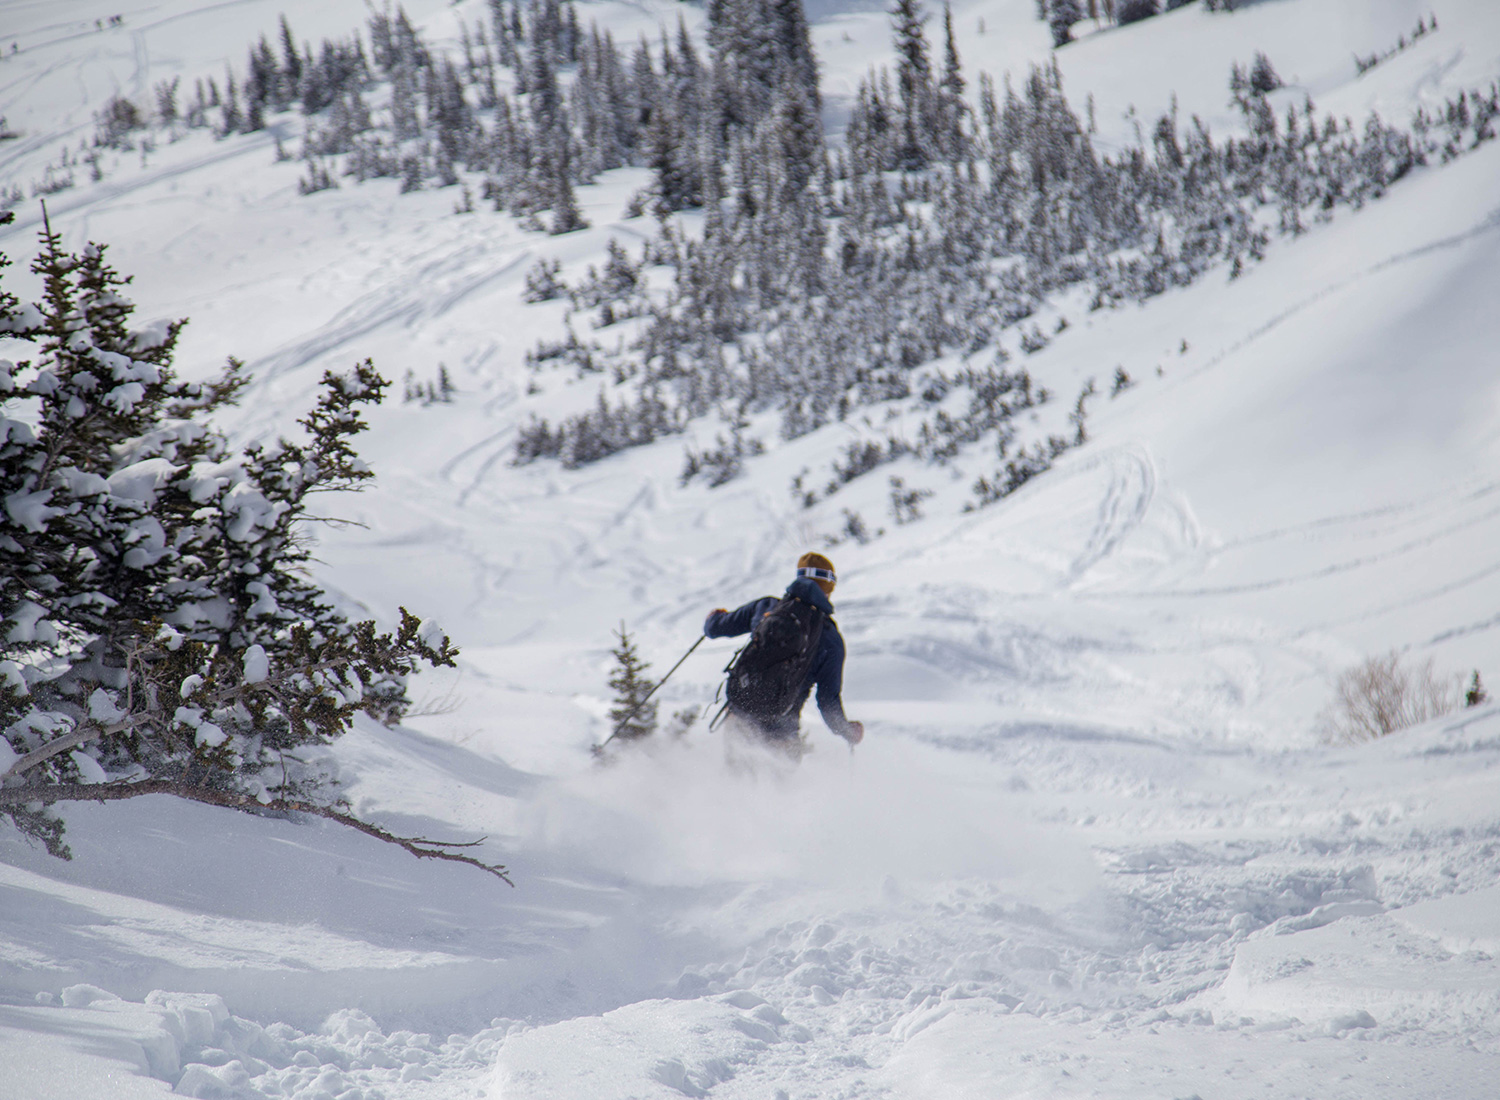 backcountry-skiing-toledo-bowl-exit-pictures.jpg